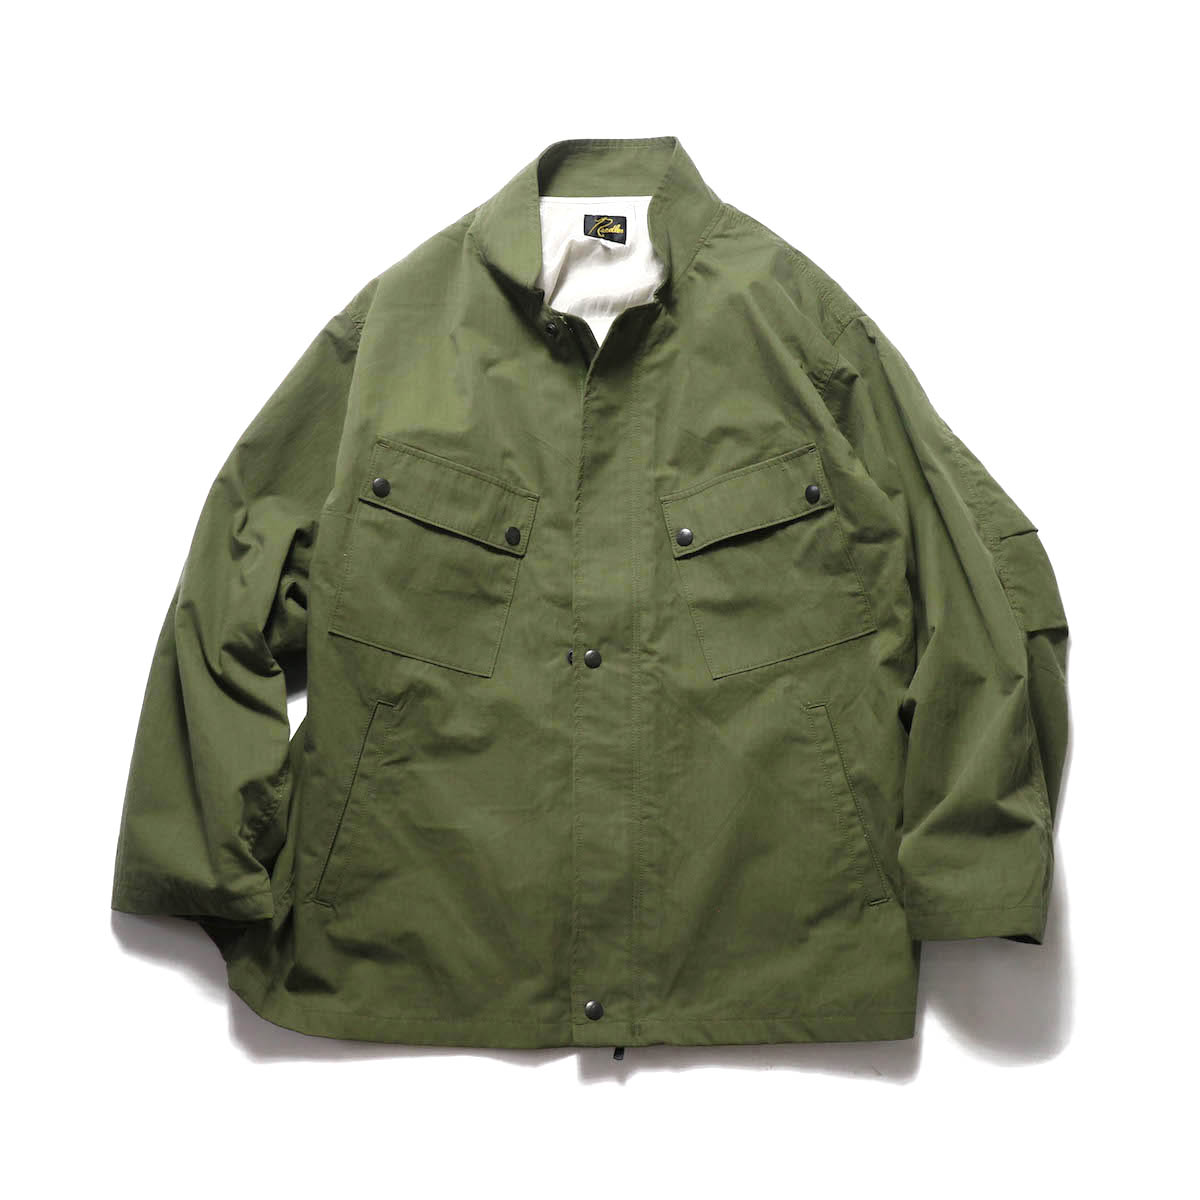 NEEDLES / Chemical Protective Jacket -C/N Ripstop Peach